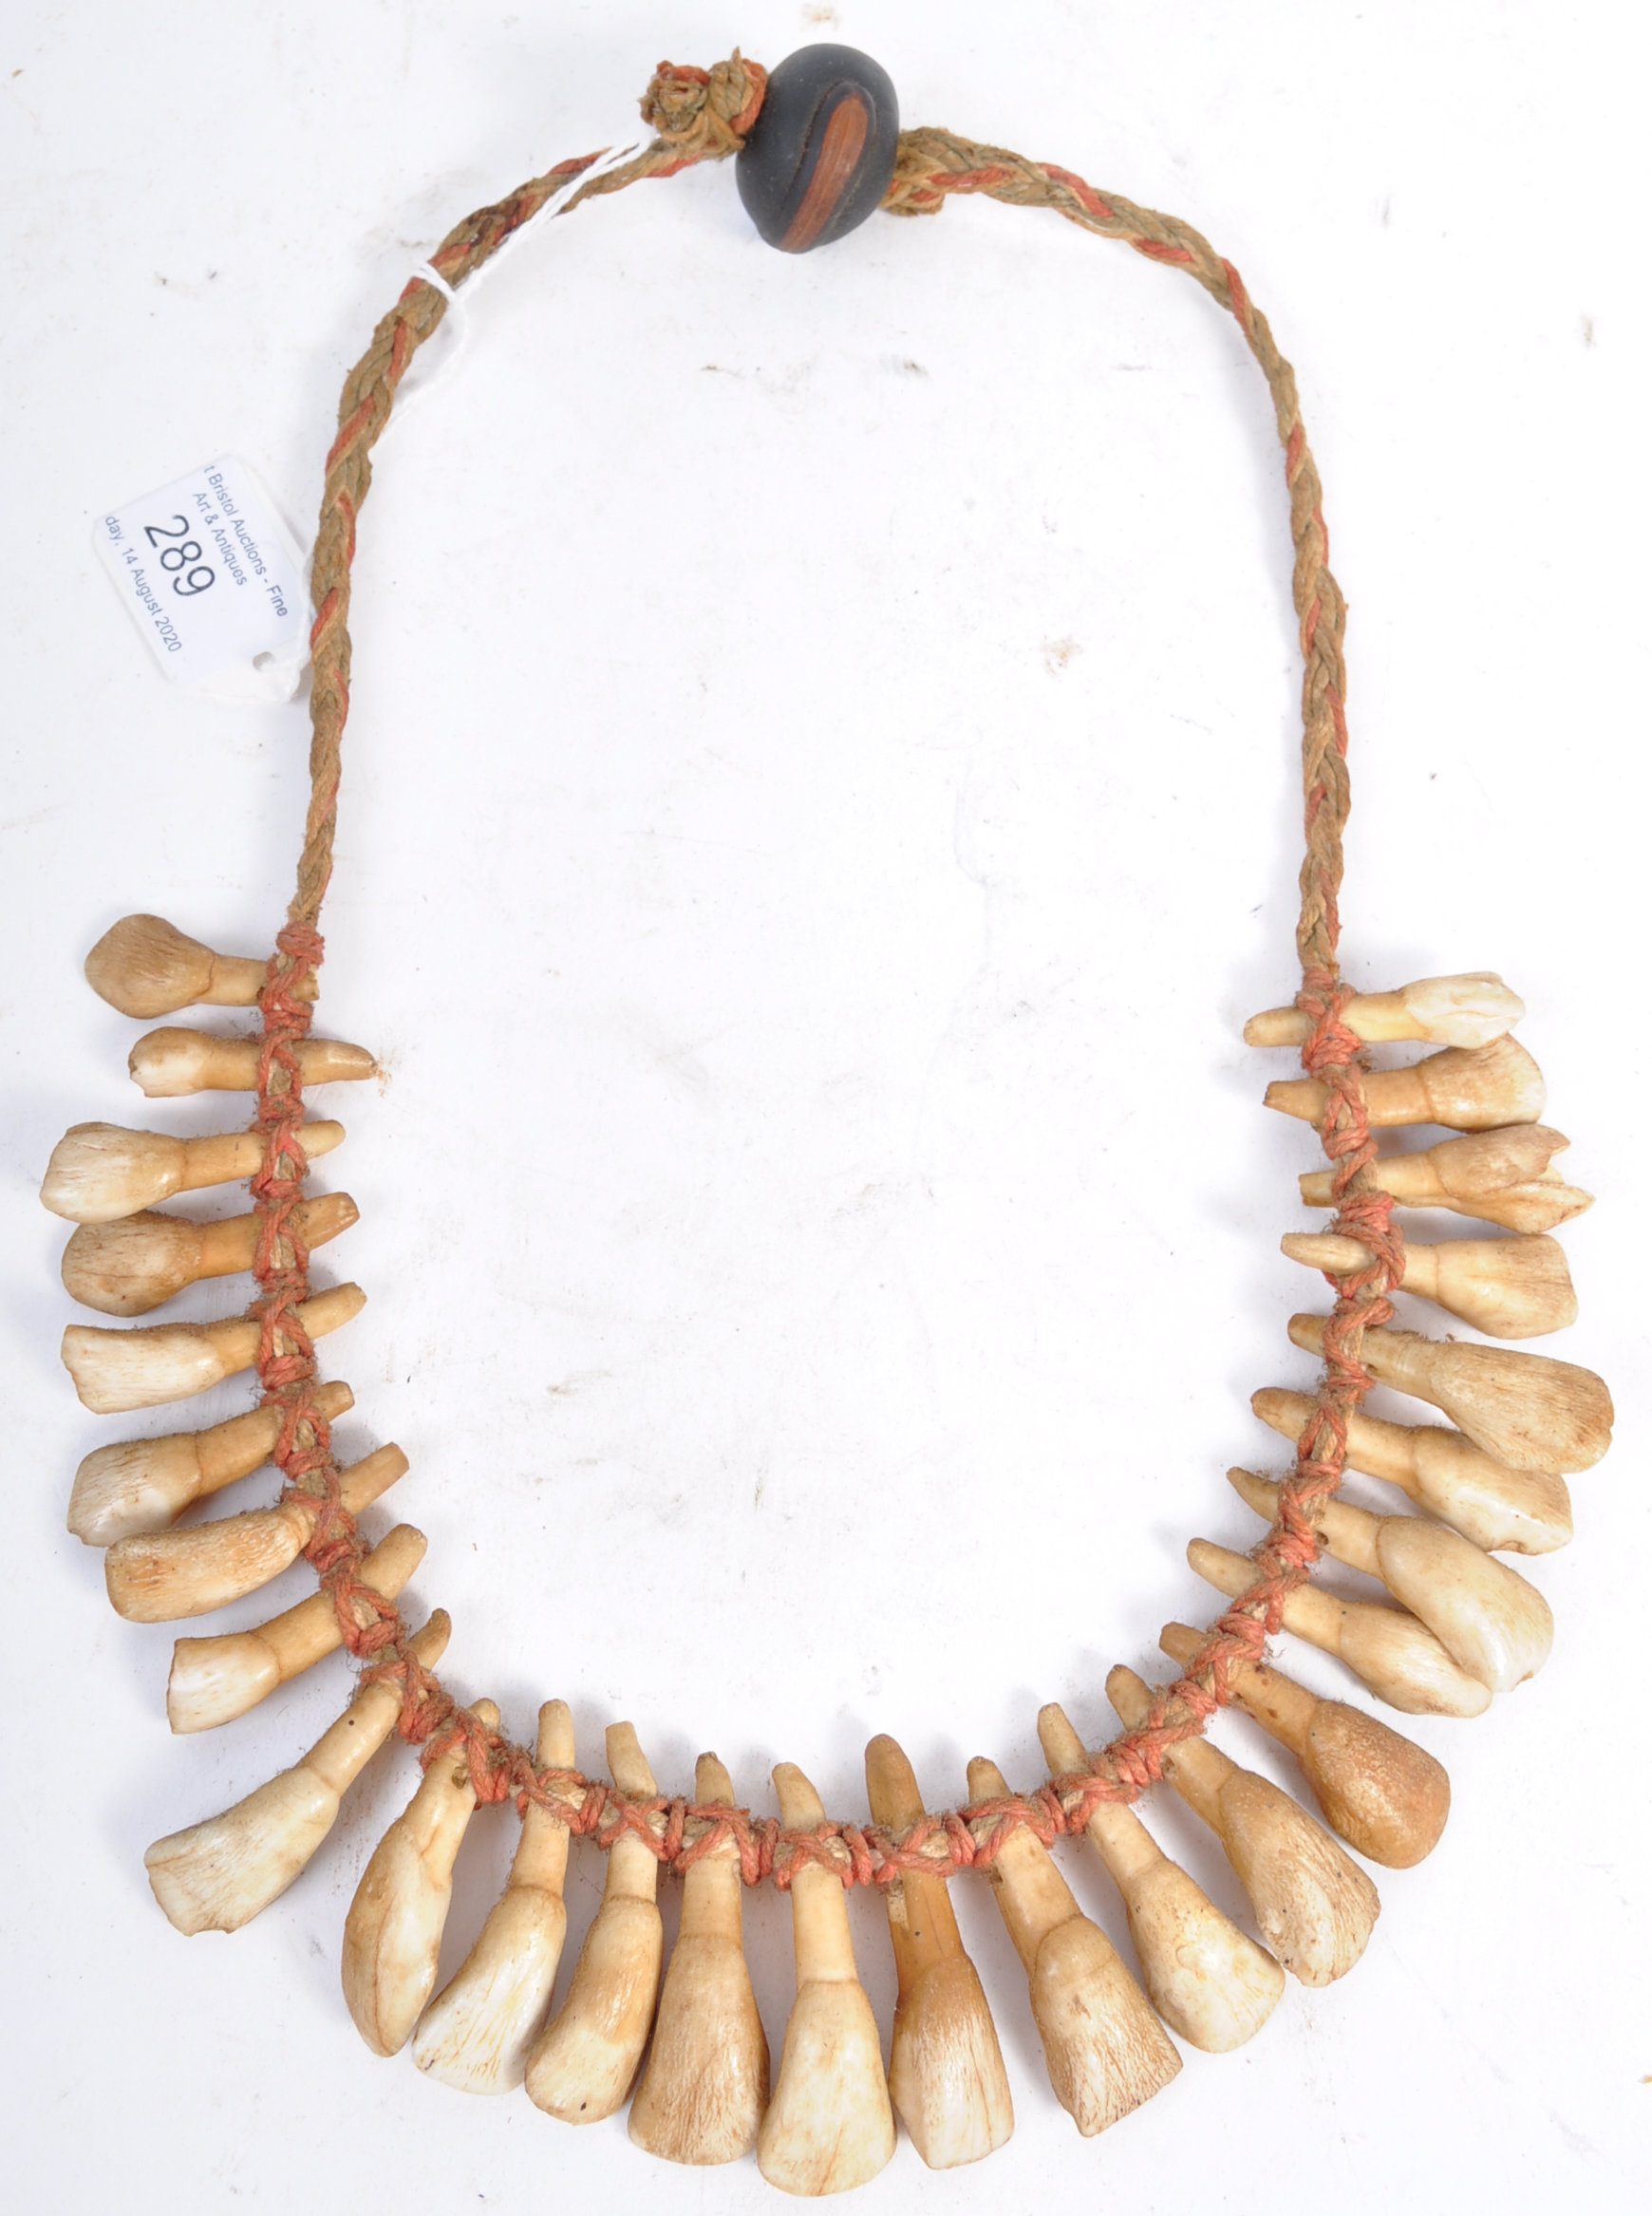 TRIBAL ANTIQUITIES - 19TH CENTURY AFRICAN TOOTH NECKLACE - Bild 6 aus 7